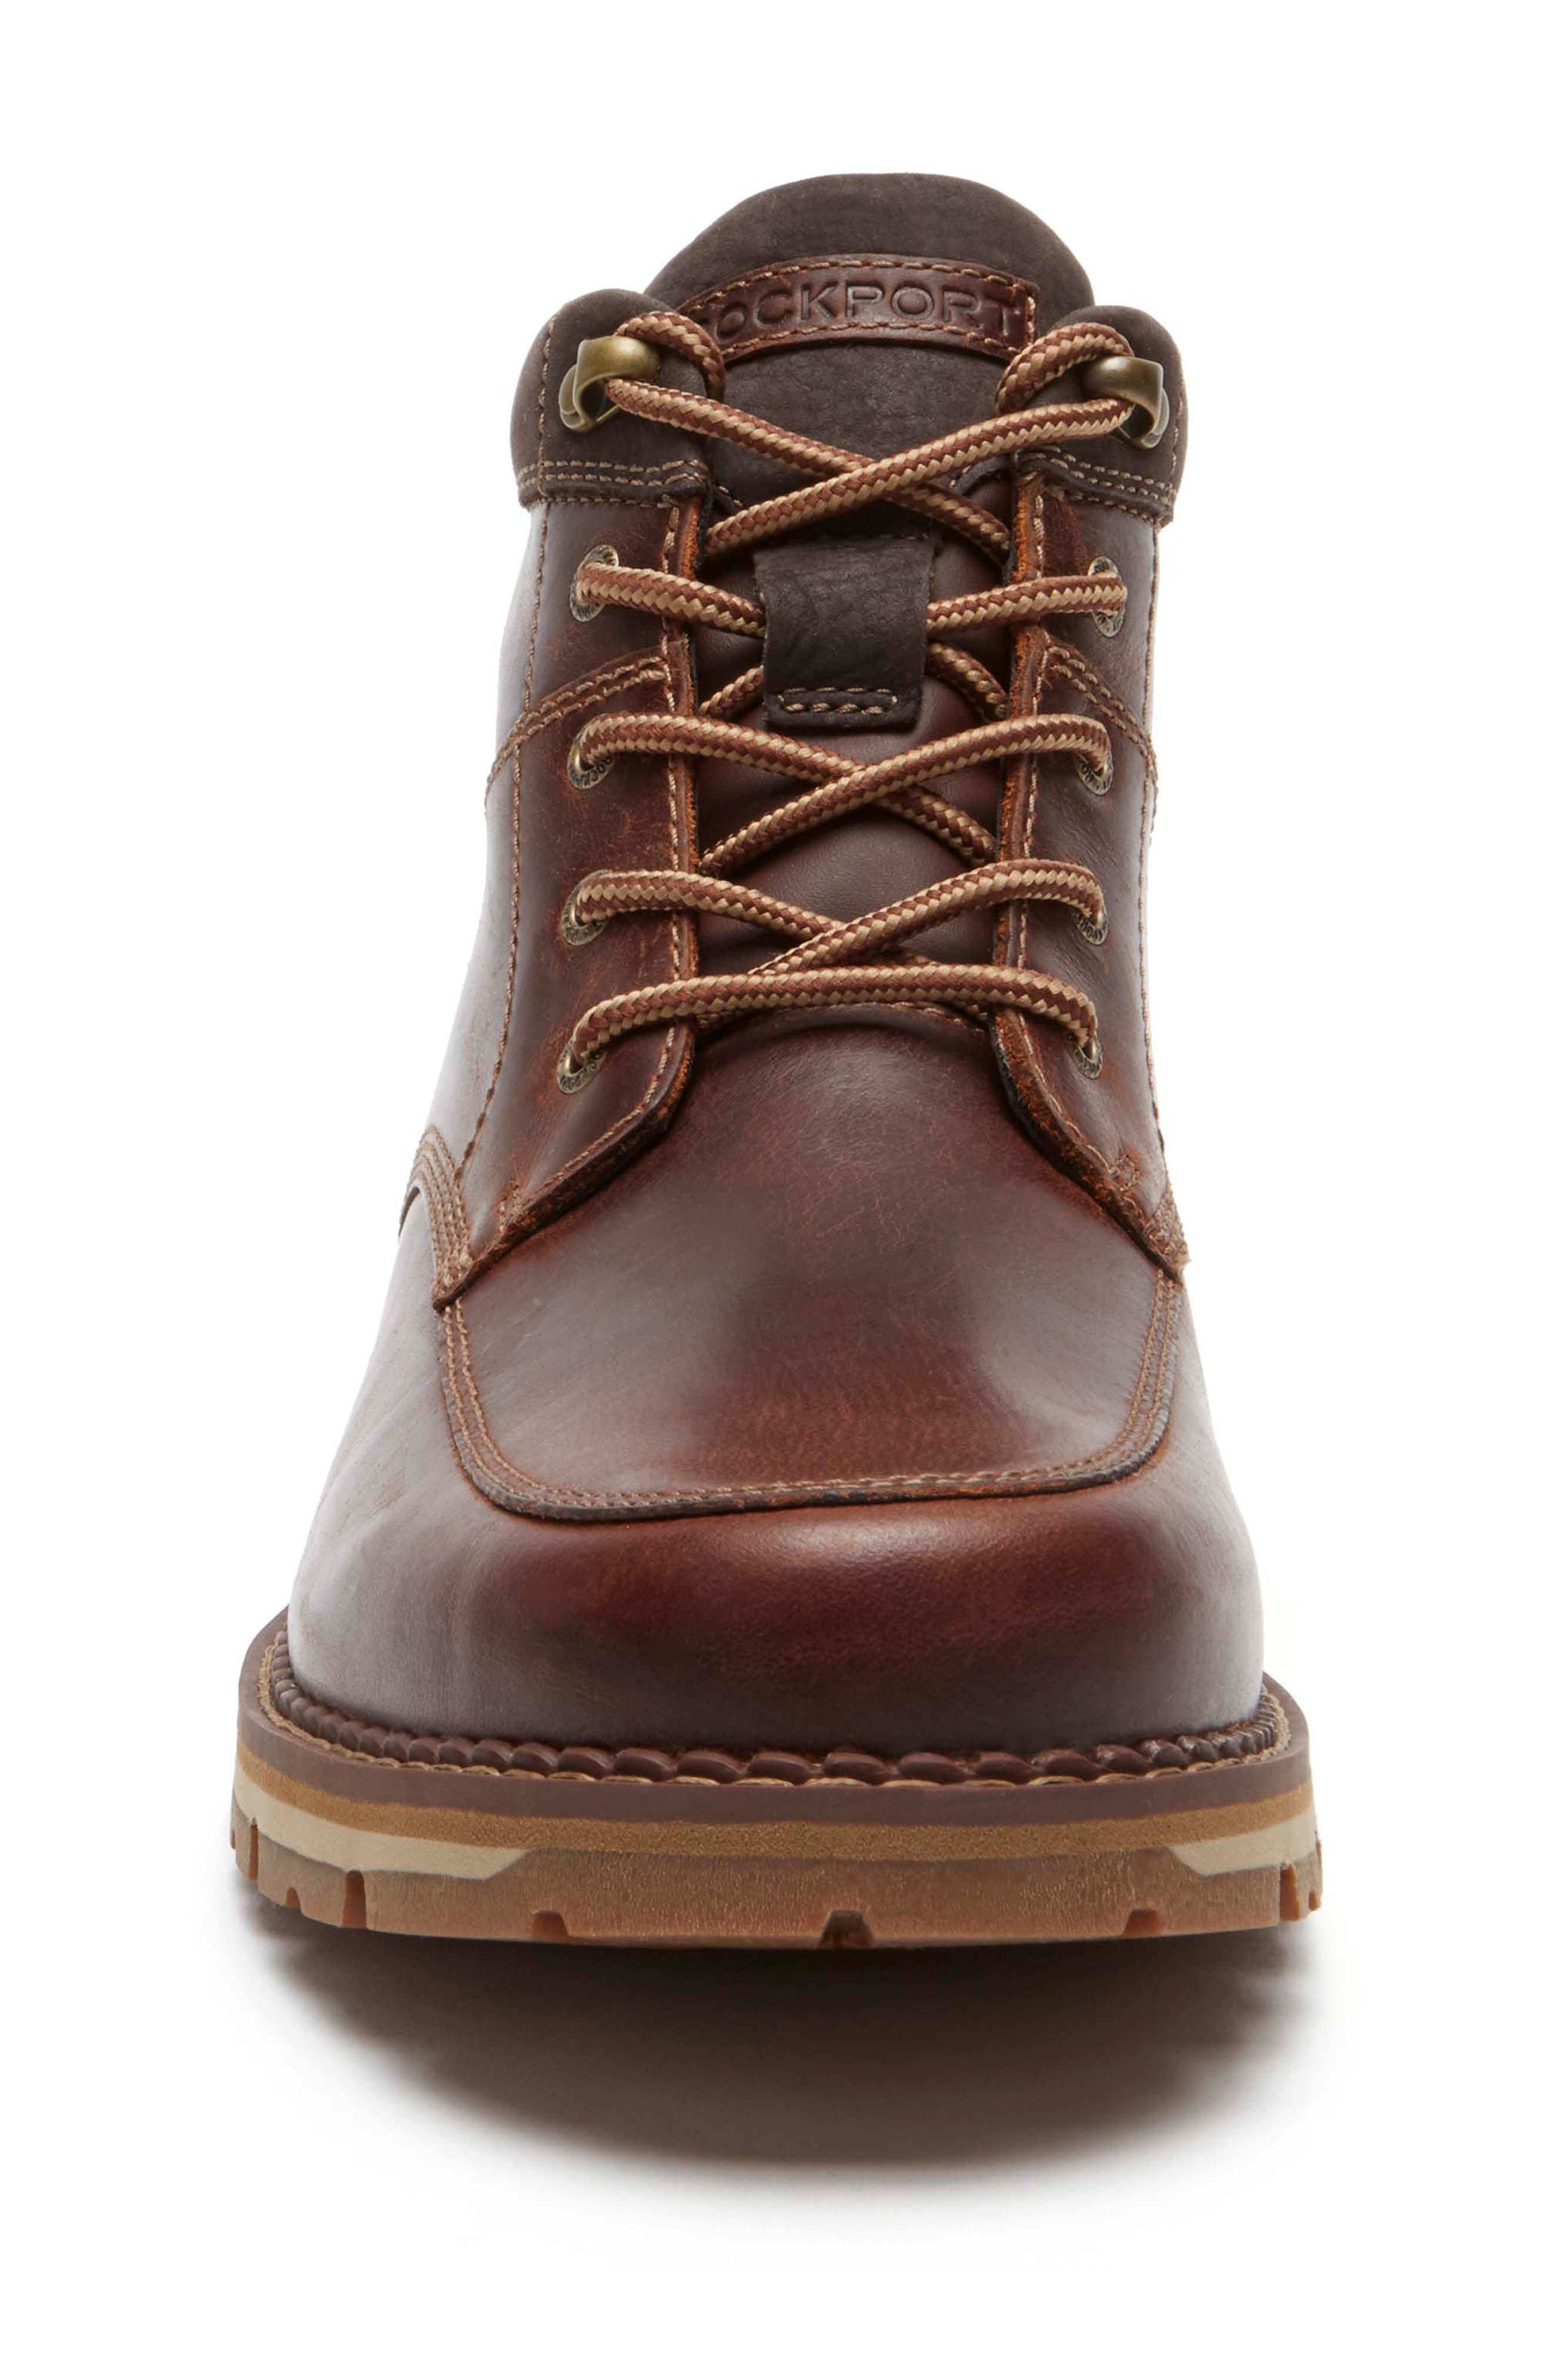 Centry Moc Toe Boot,                             Alternate thumbnail 4, color,                             200